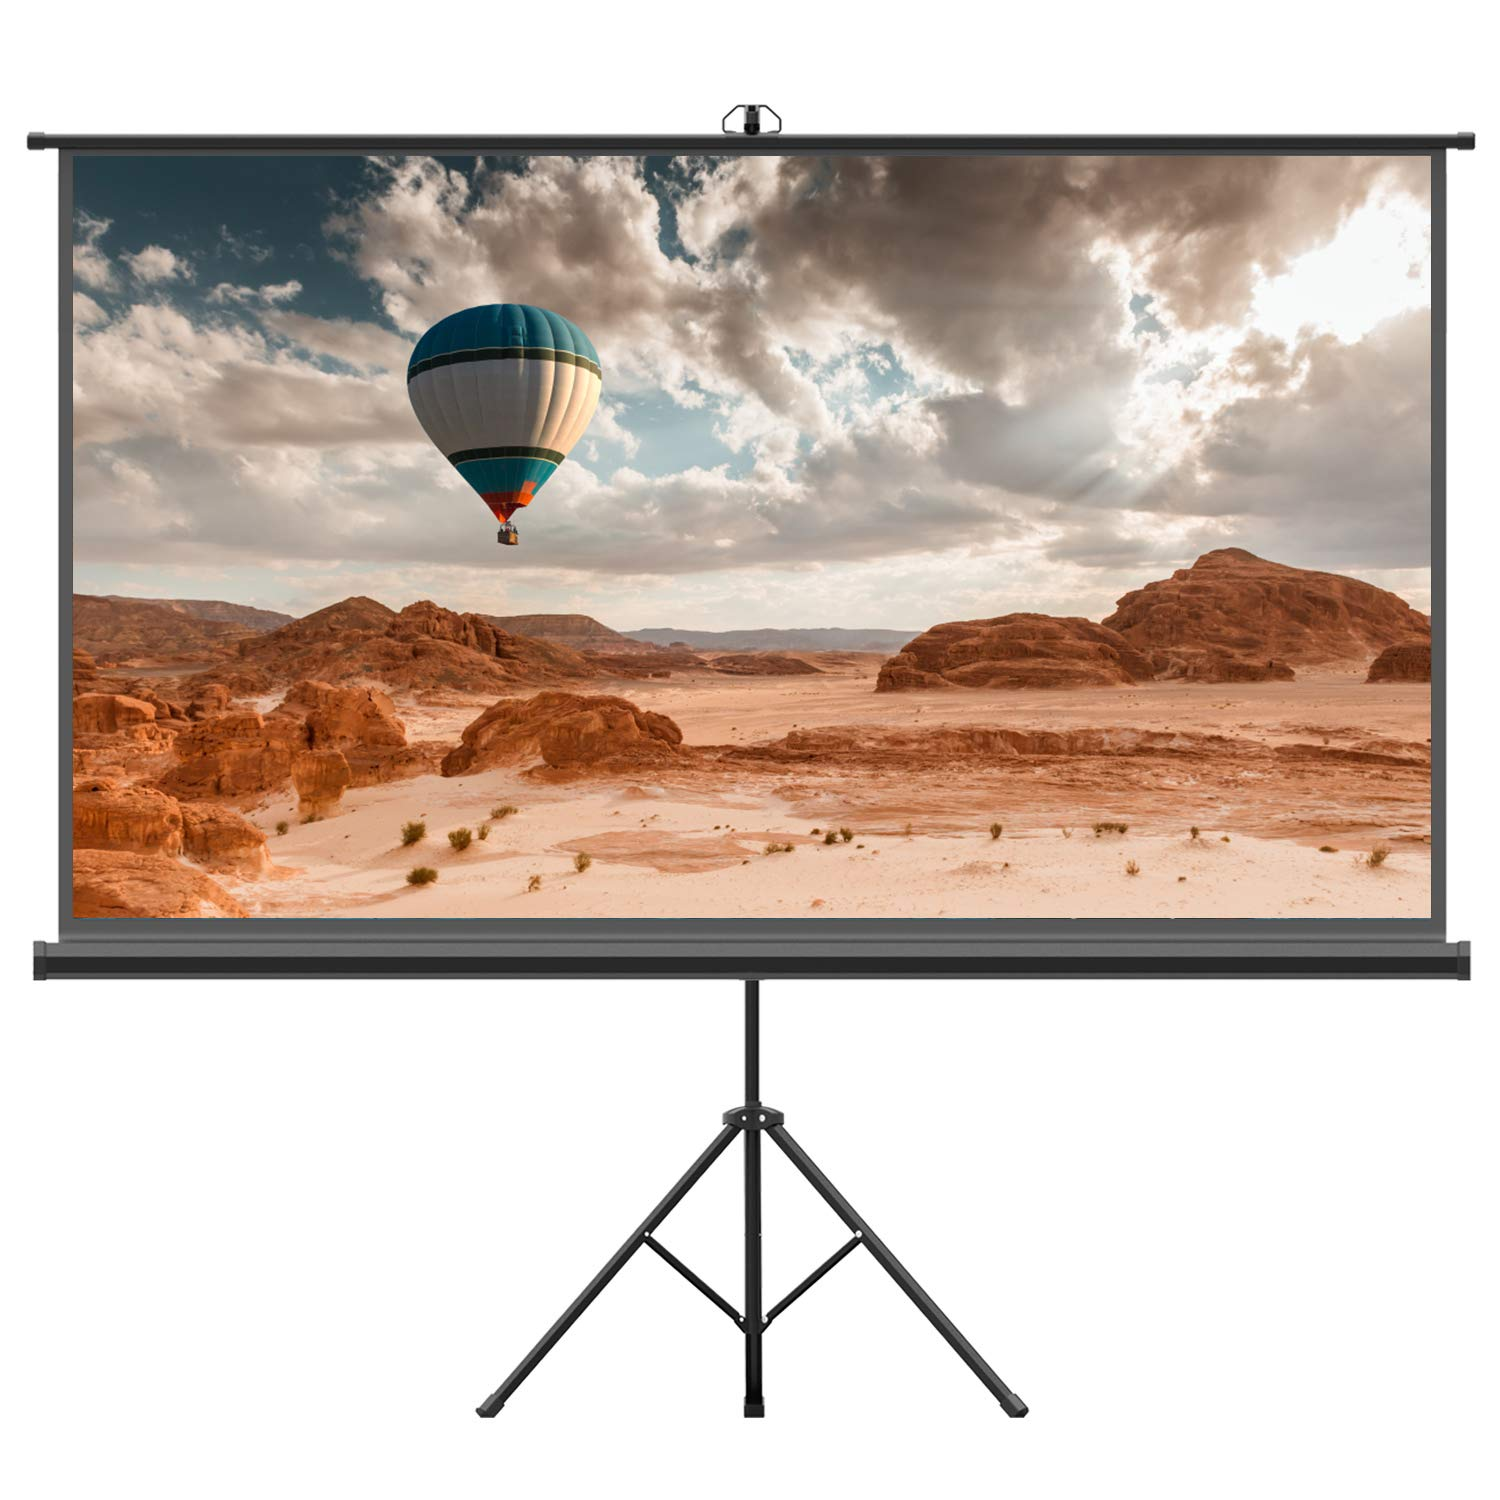 Projector Screen with Tripod Stand - FEZIBO 100 inch 16:9 HD Projection Screen with Stand Portable Foldable for Outdoor Indoor,160° Viewing Angle by FEZIBO